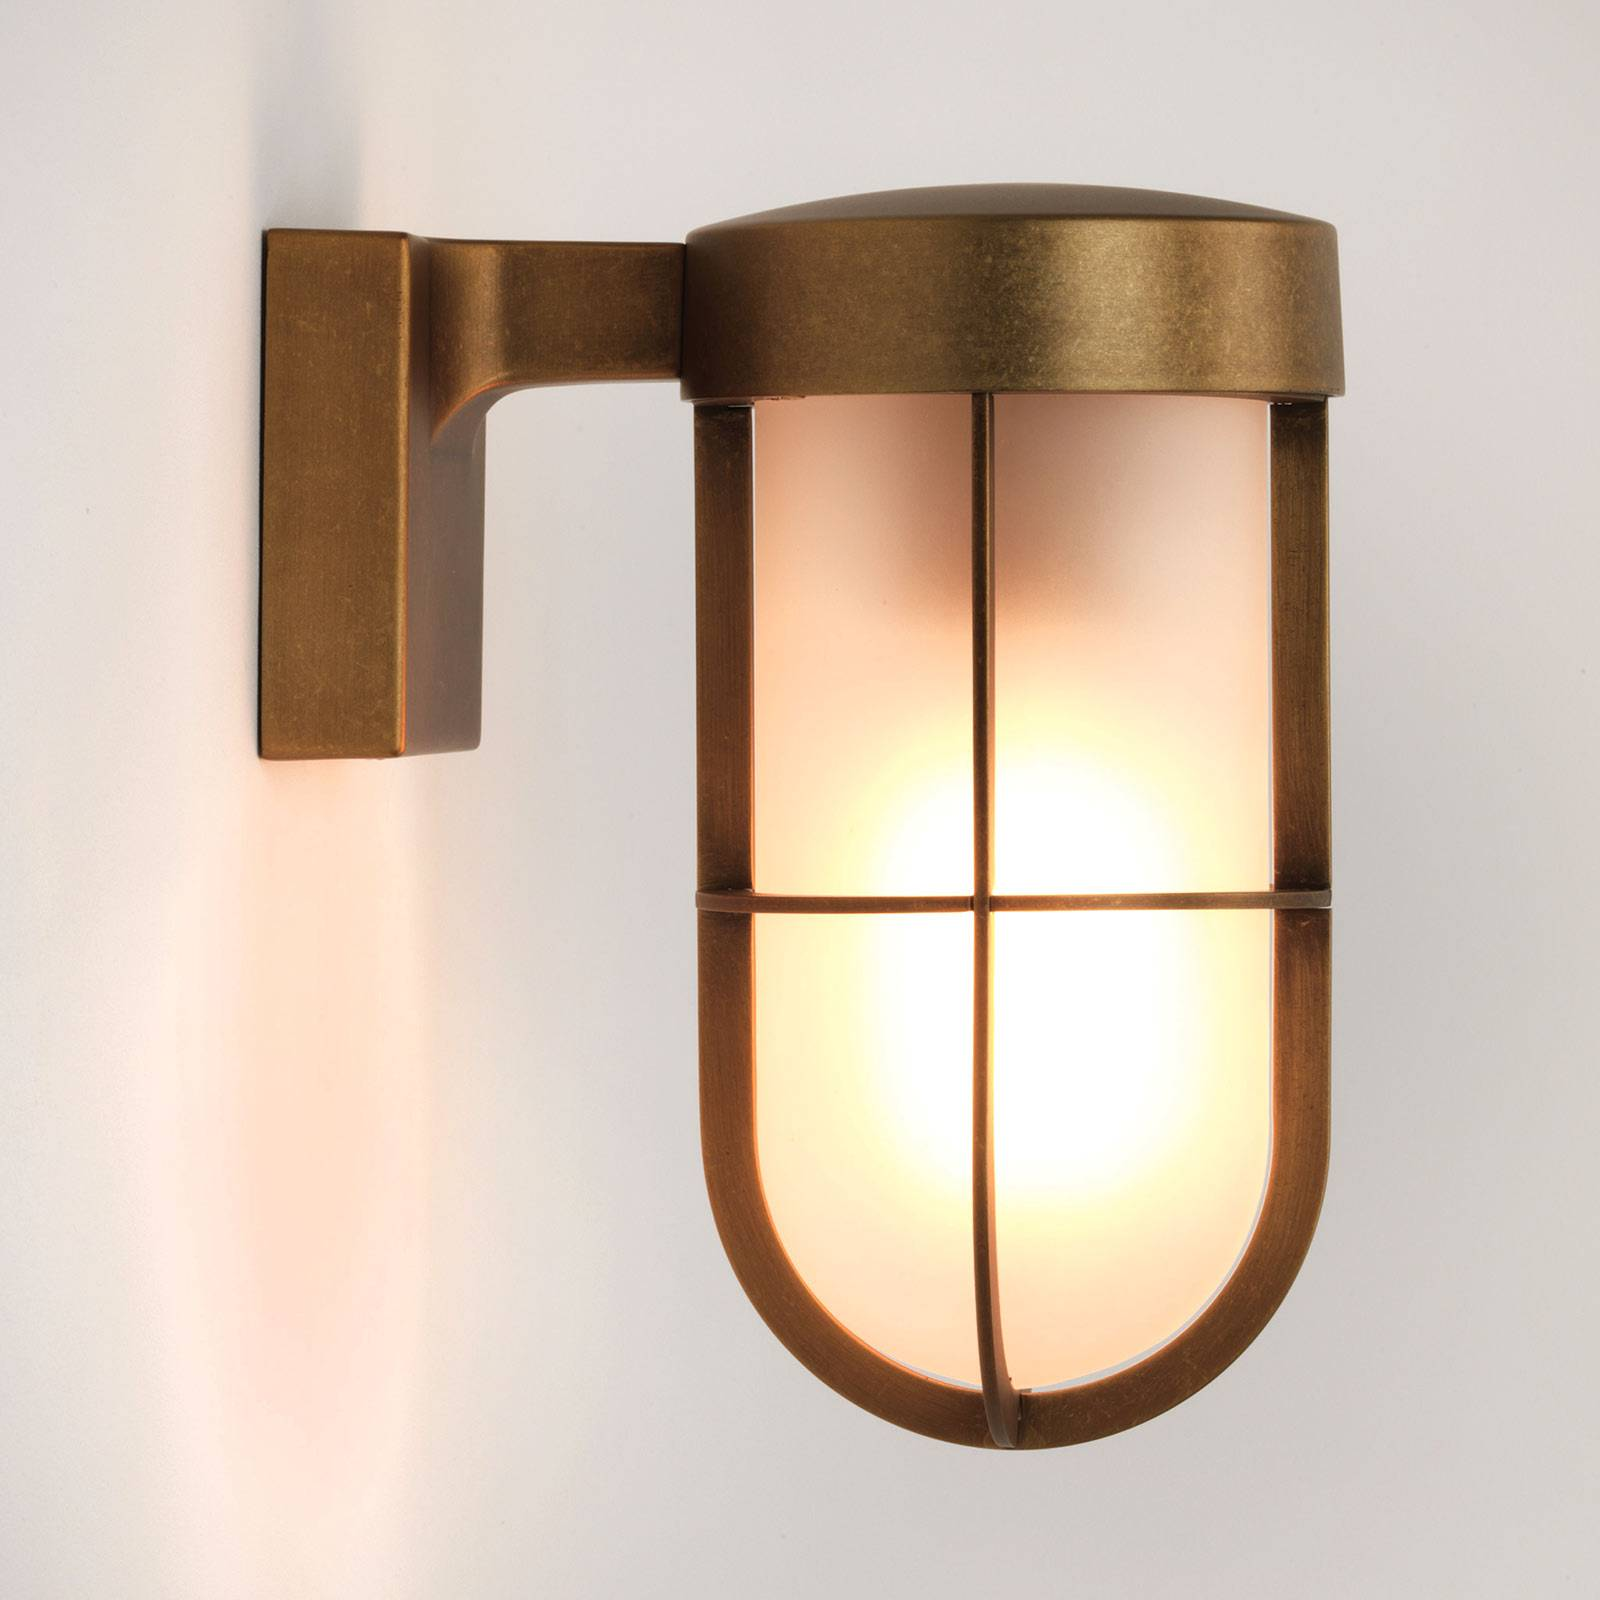 Astro Cabin Wall wandlamp, messing antiek frosted